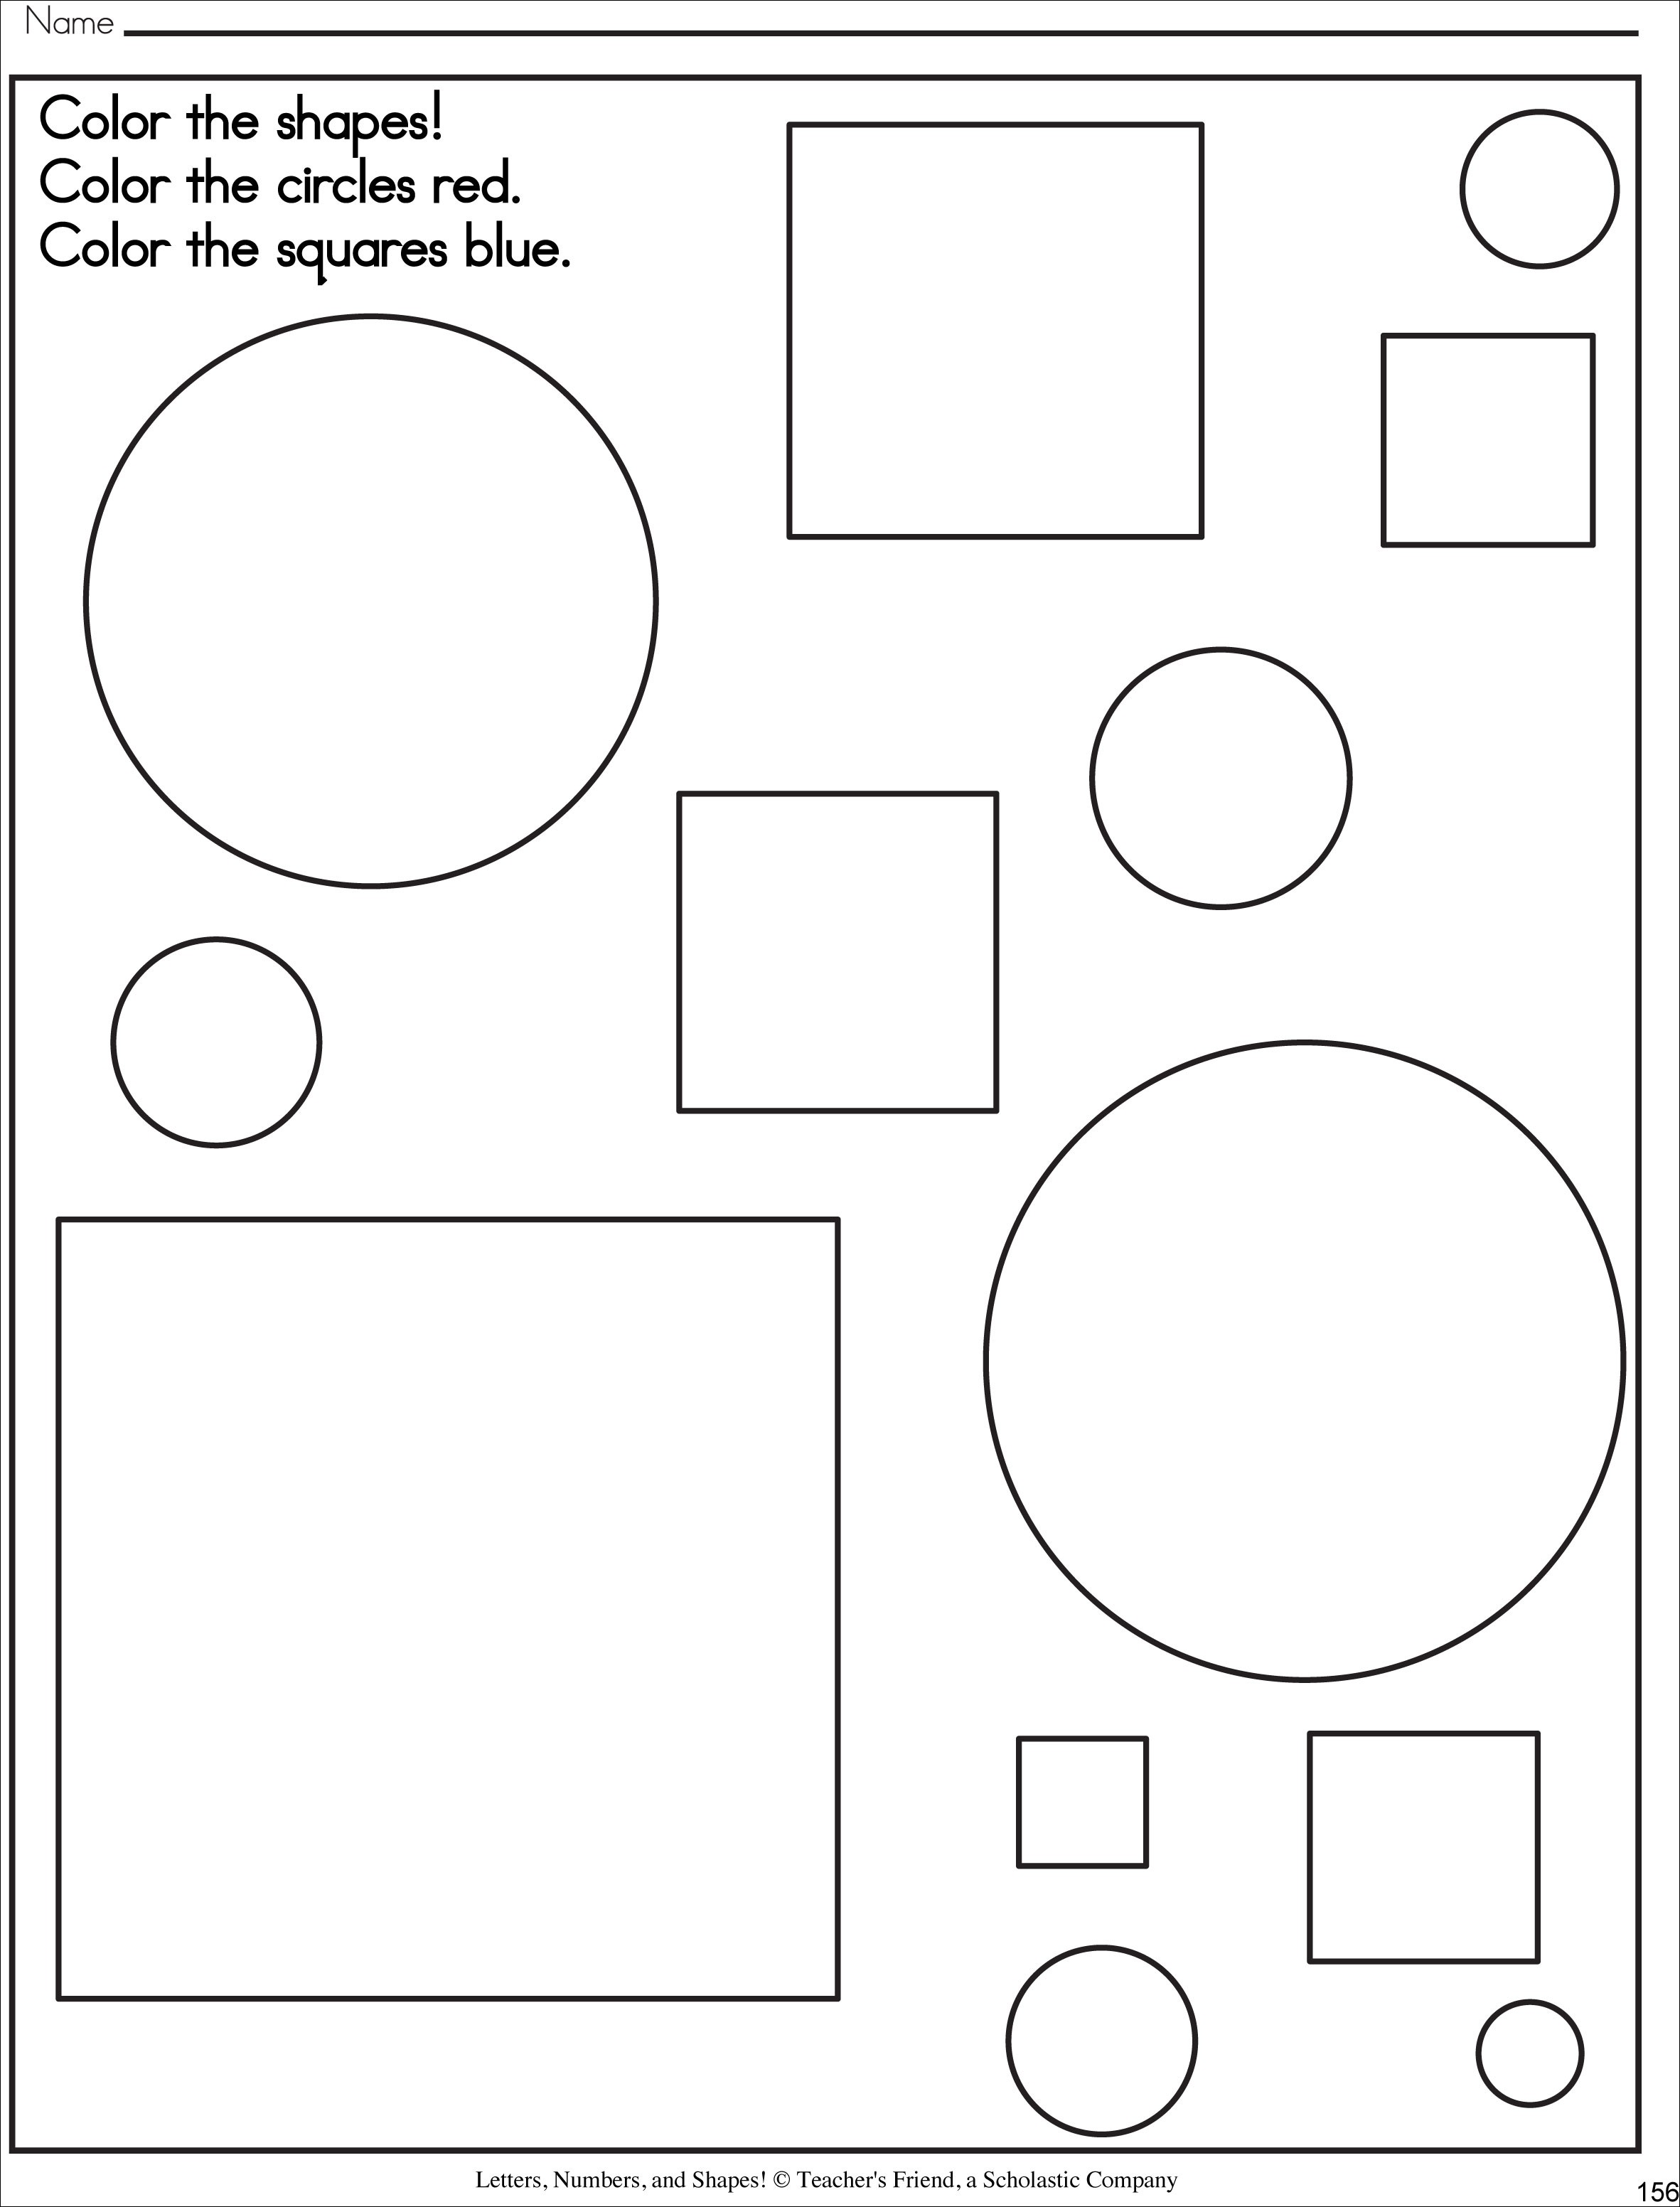 all shapes coloring pages - photo#26